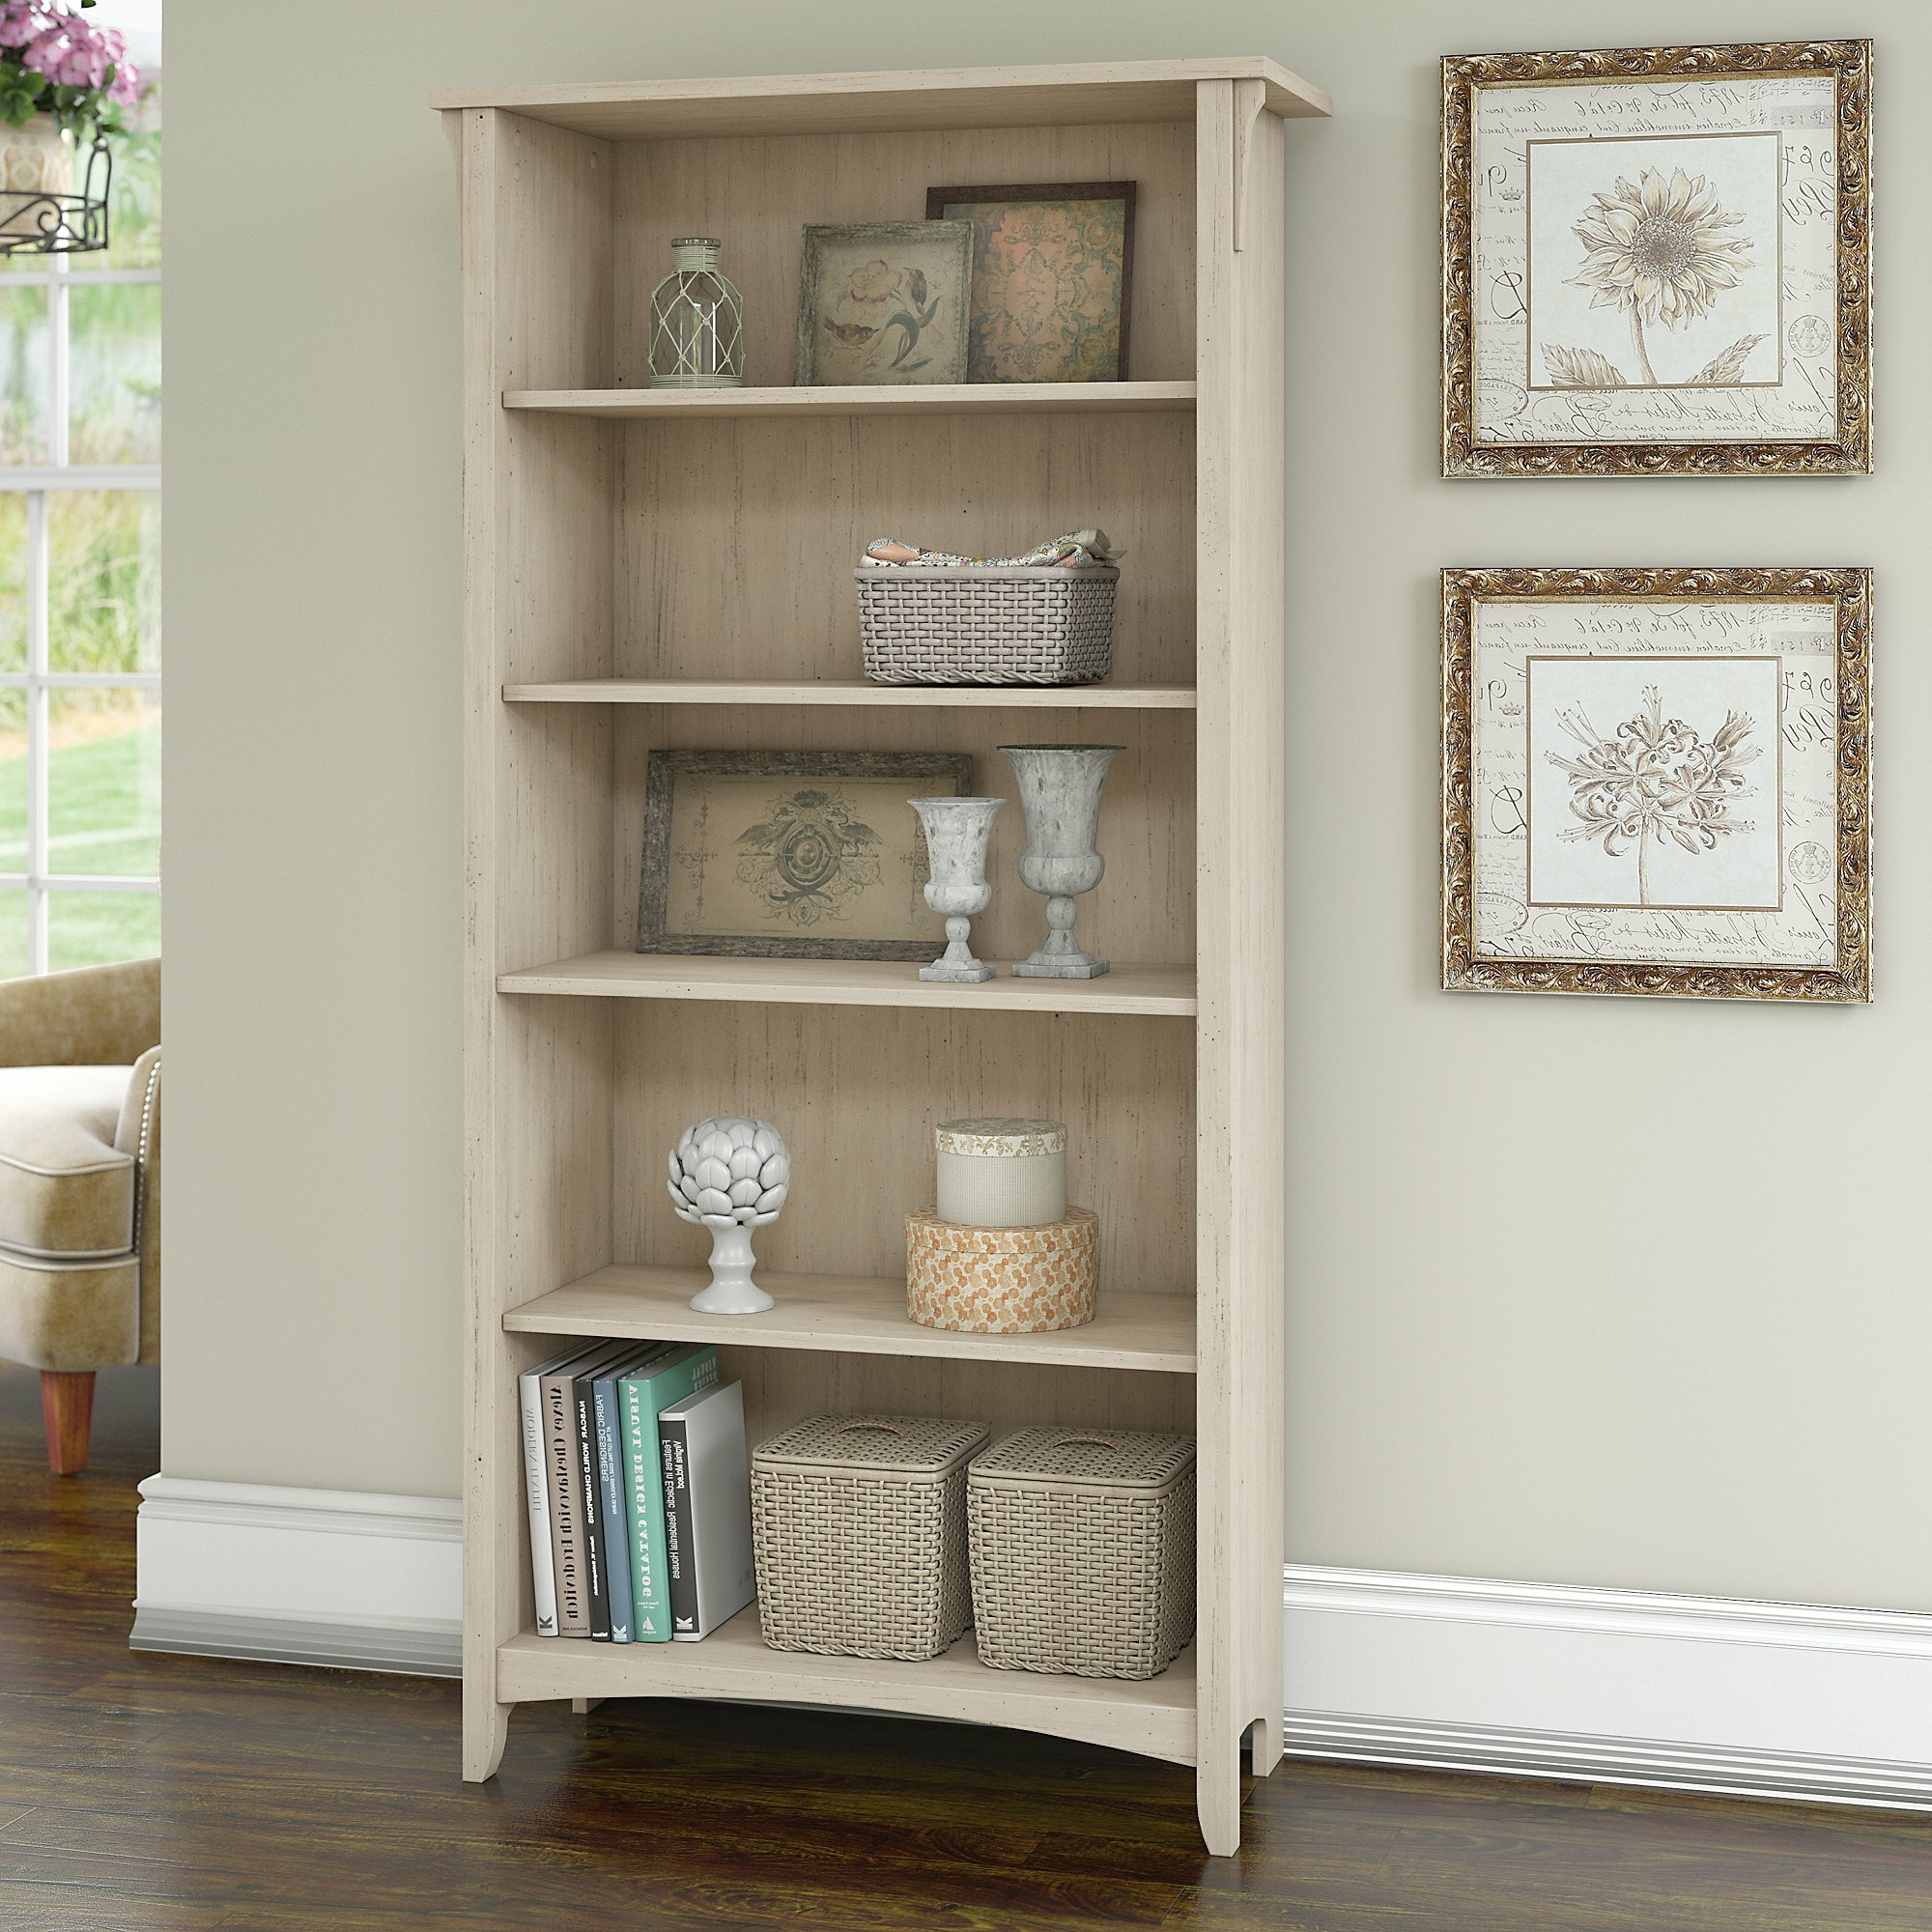 Salina Standard Bookcases Throughout Preferred Salina Standard Bookcase (Gallery 3 of 20)